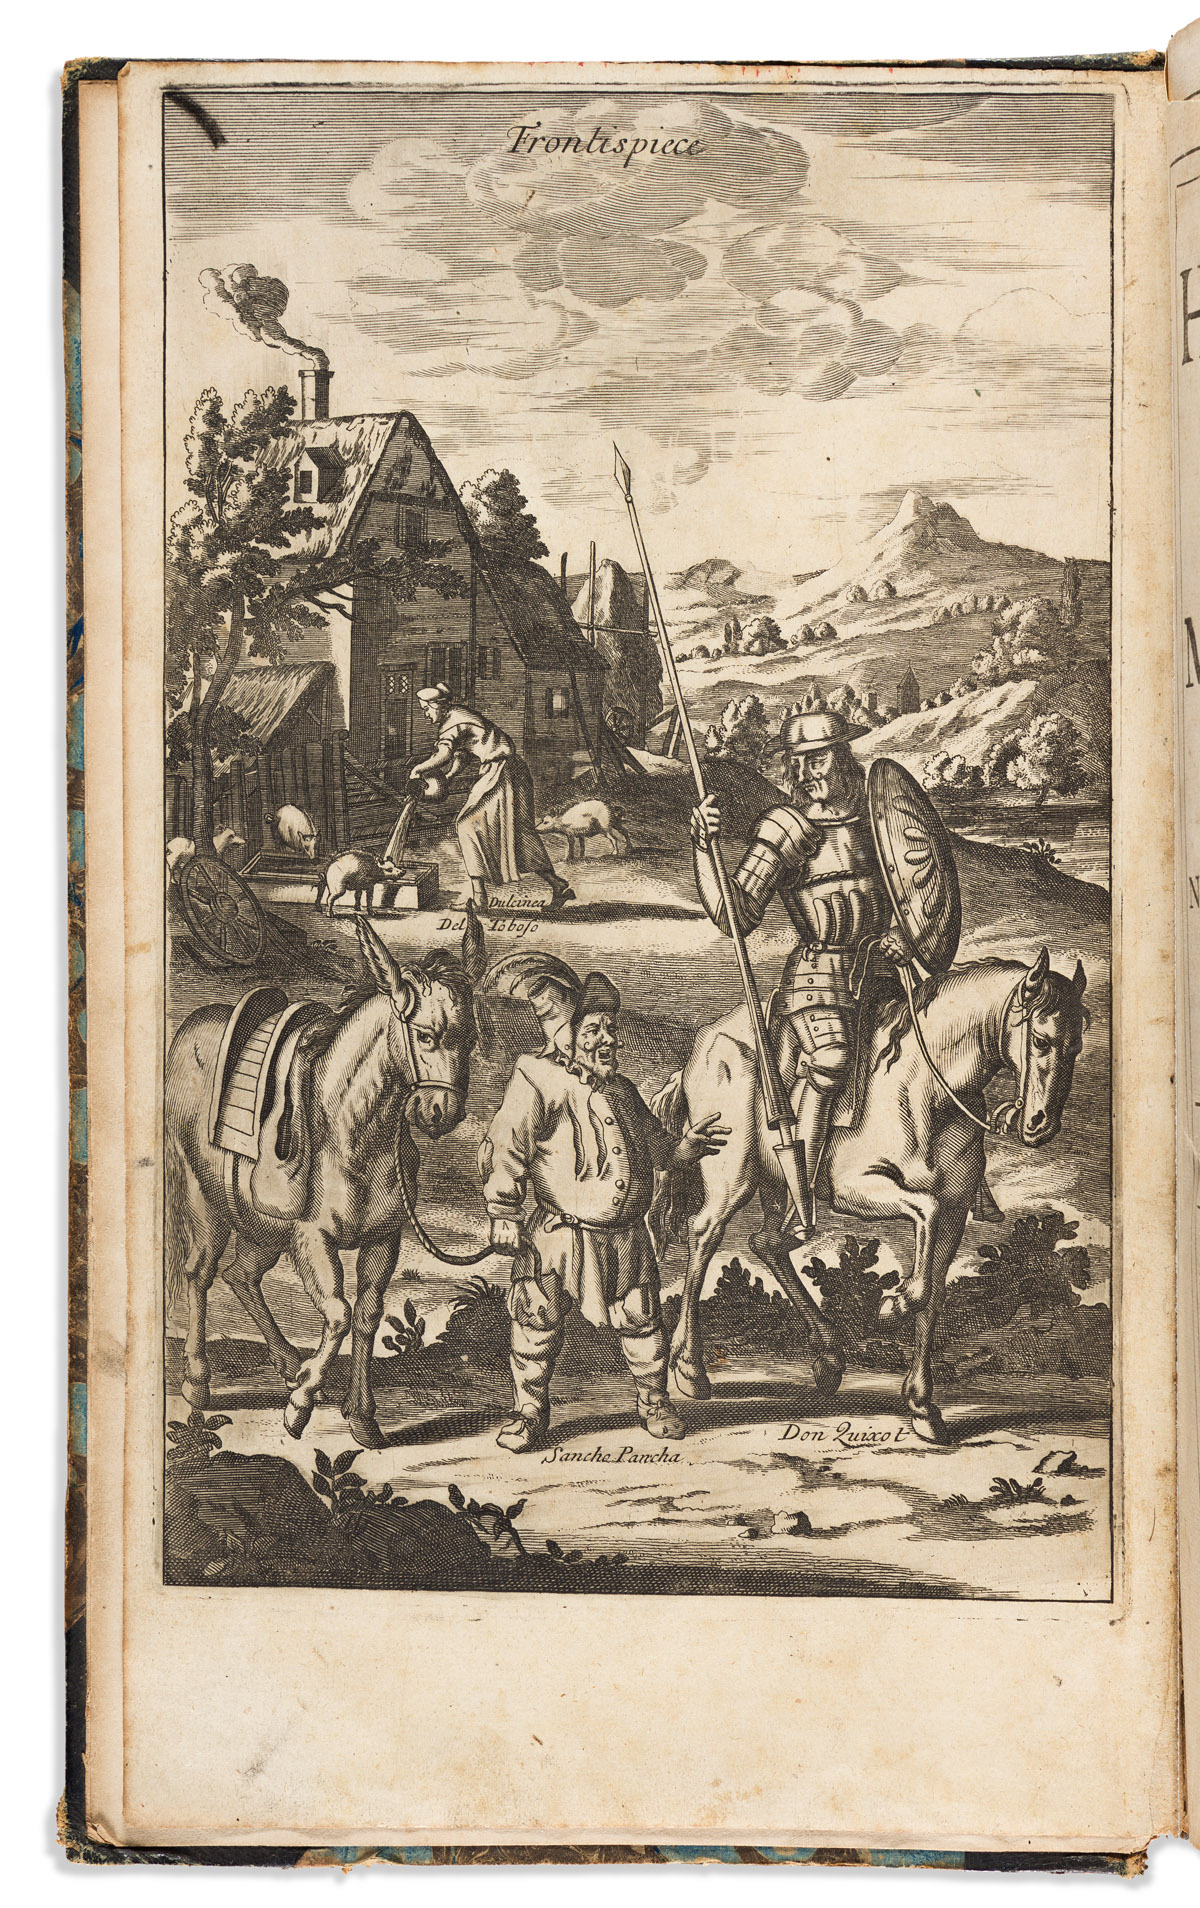 Cervantes Saavedra, Miguel de (1547-1616) The History of the Most Renowned Don Quixote of Mancha: and his Trusty Squire Sancho Pancha.